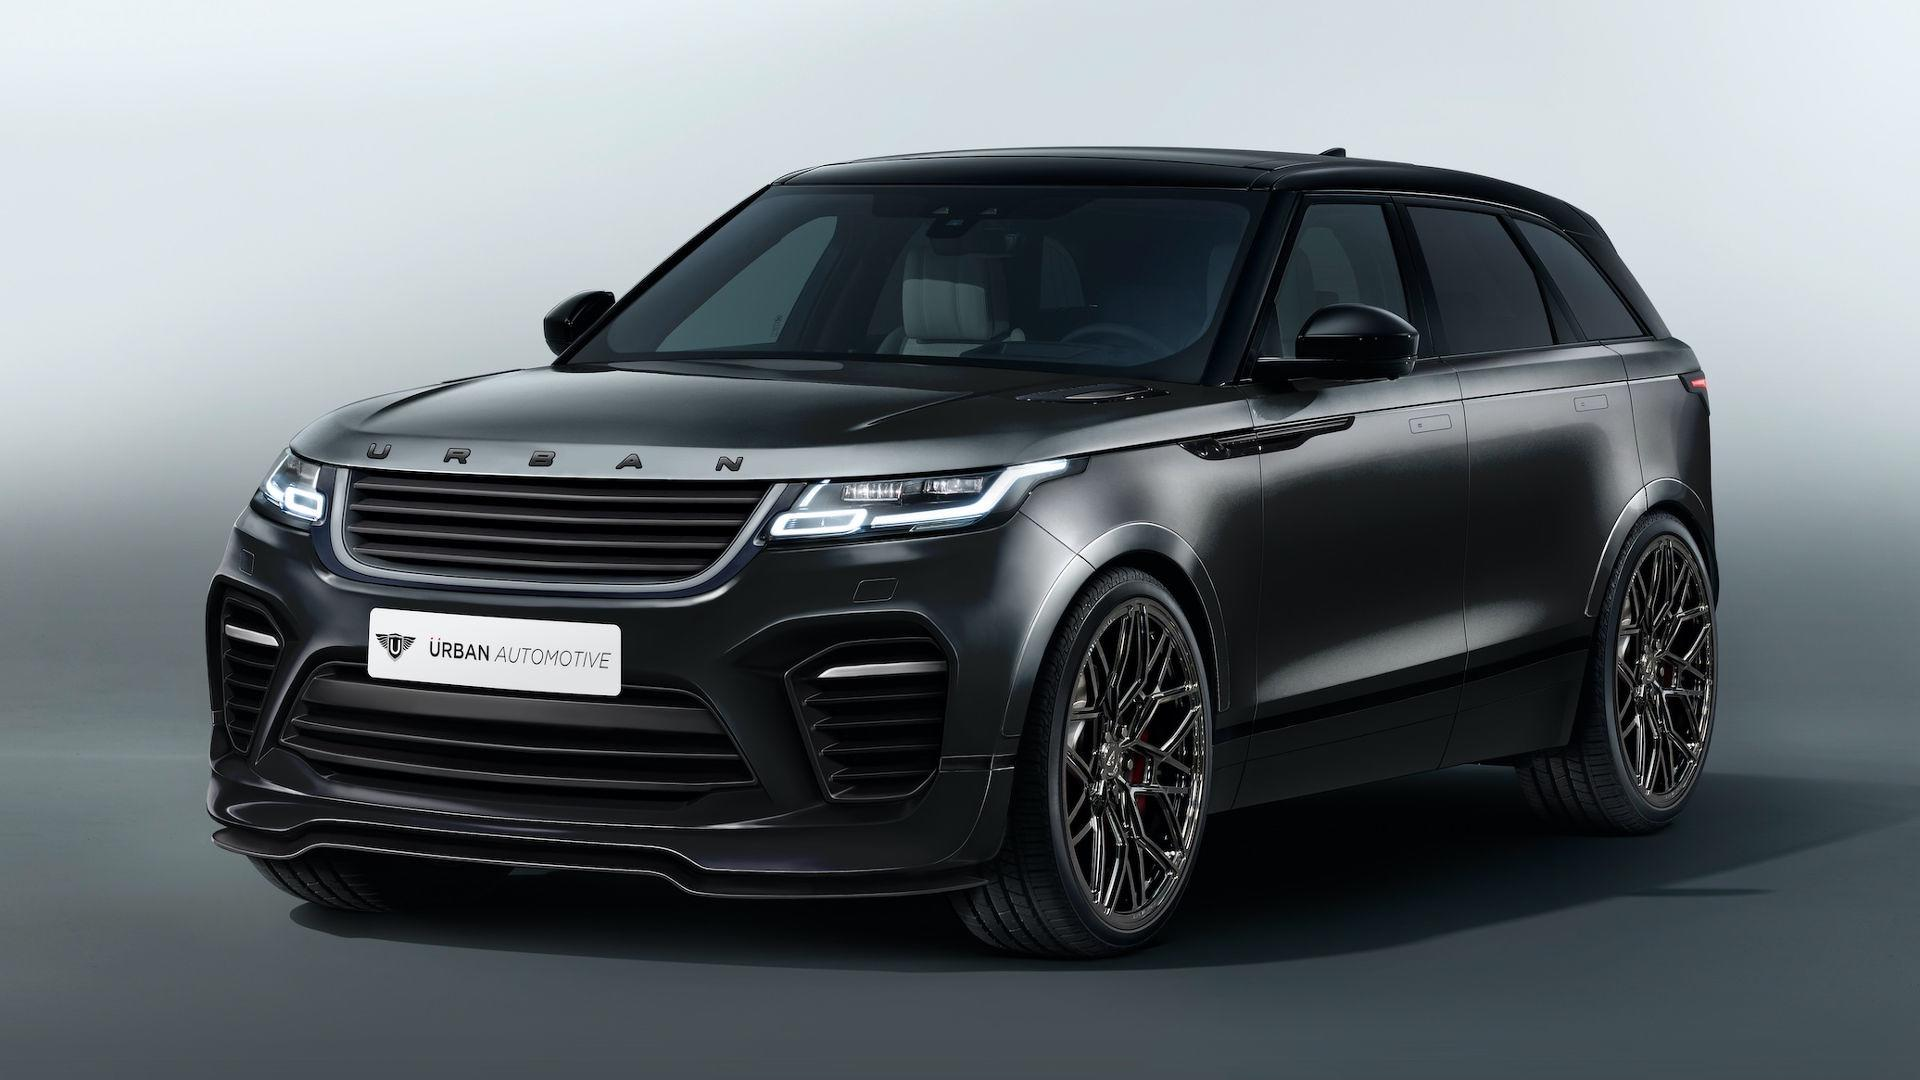 Range Rover Velar Gains Urban Automotive Makeover